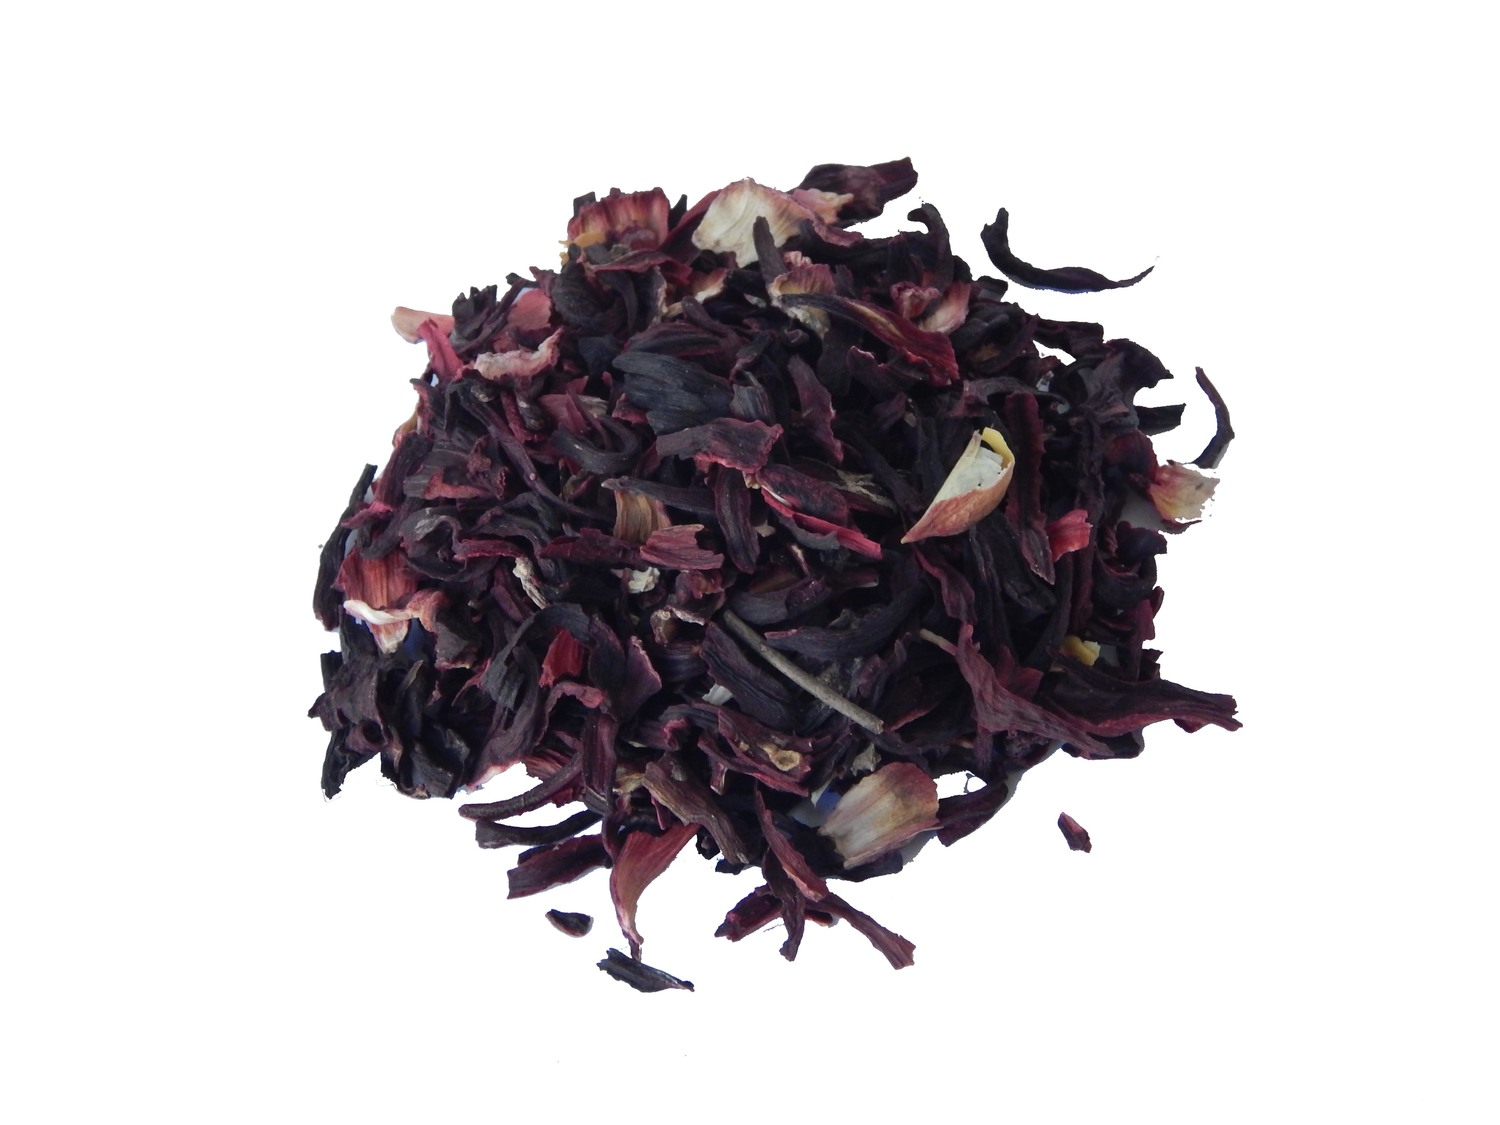 Dried Hibiscus Flowers Marnamaria Spices Herbs And Seasoning Blends